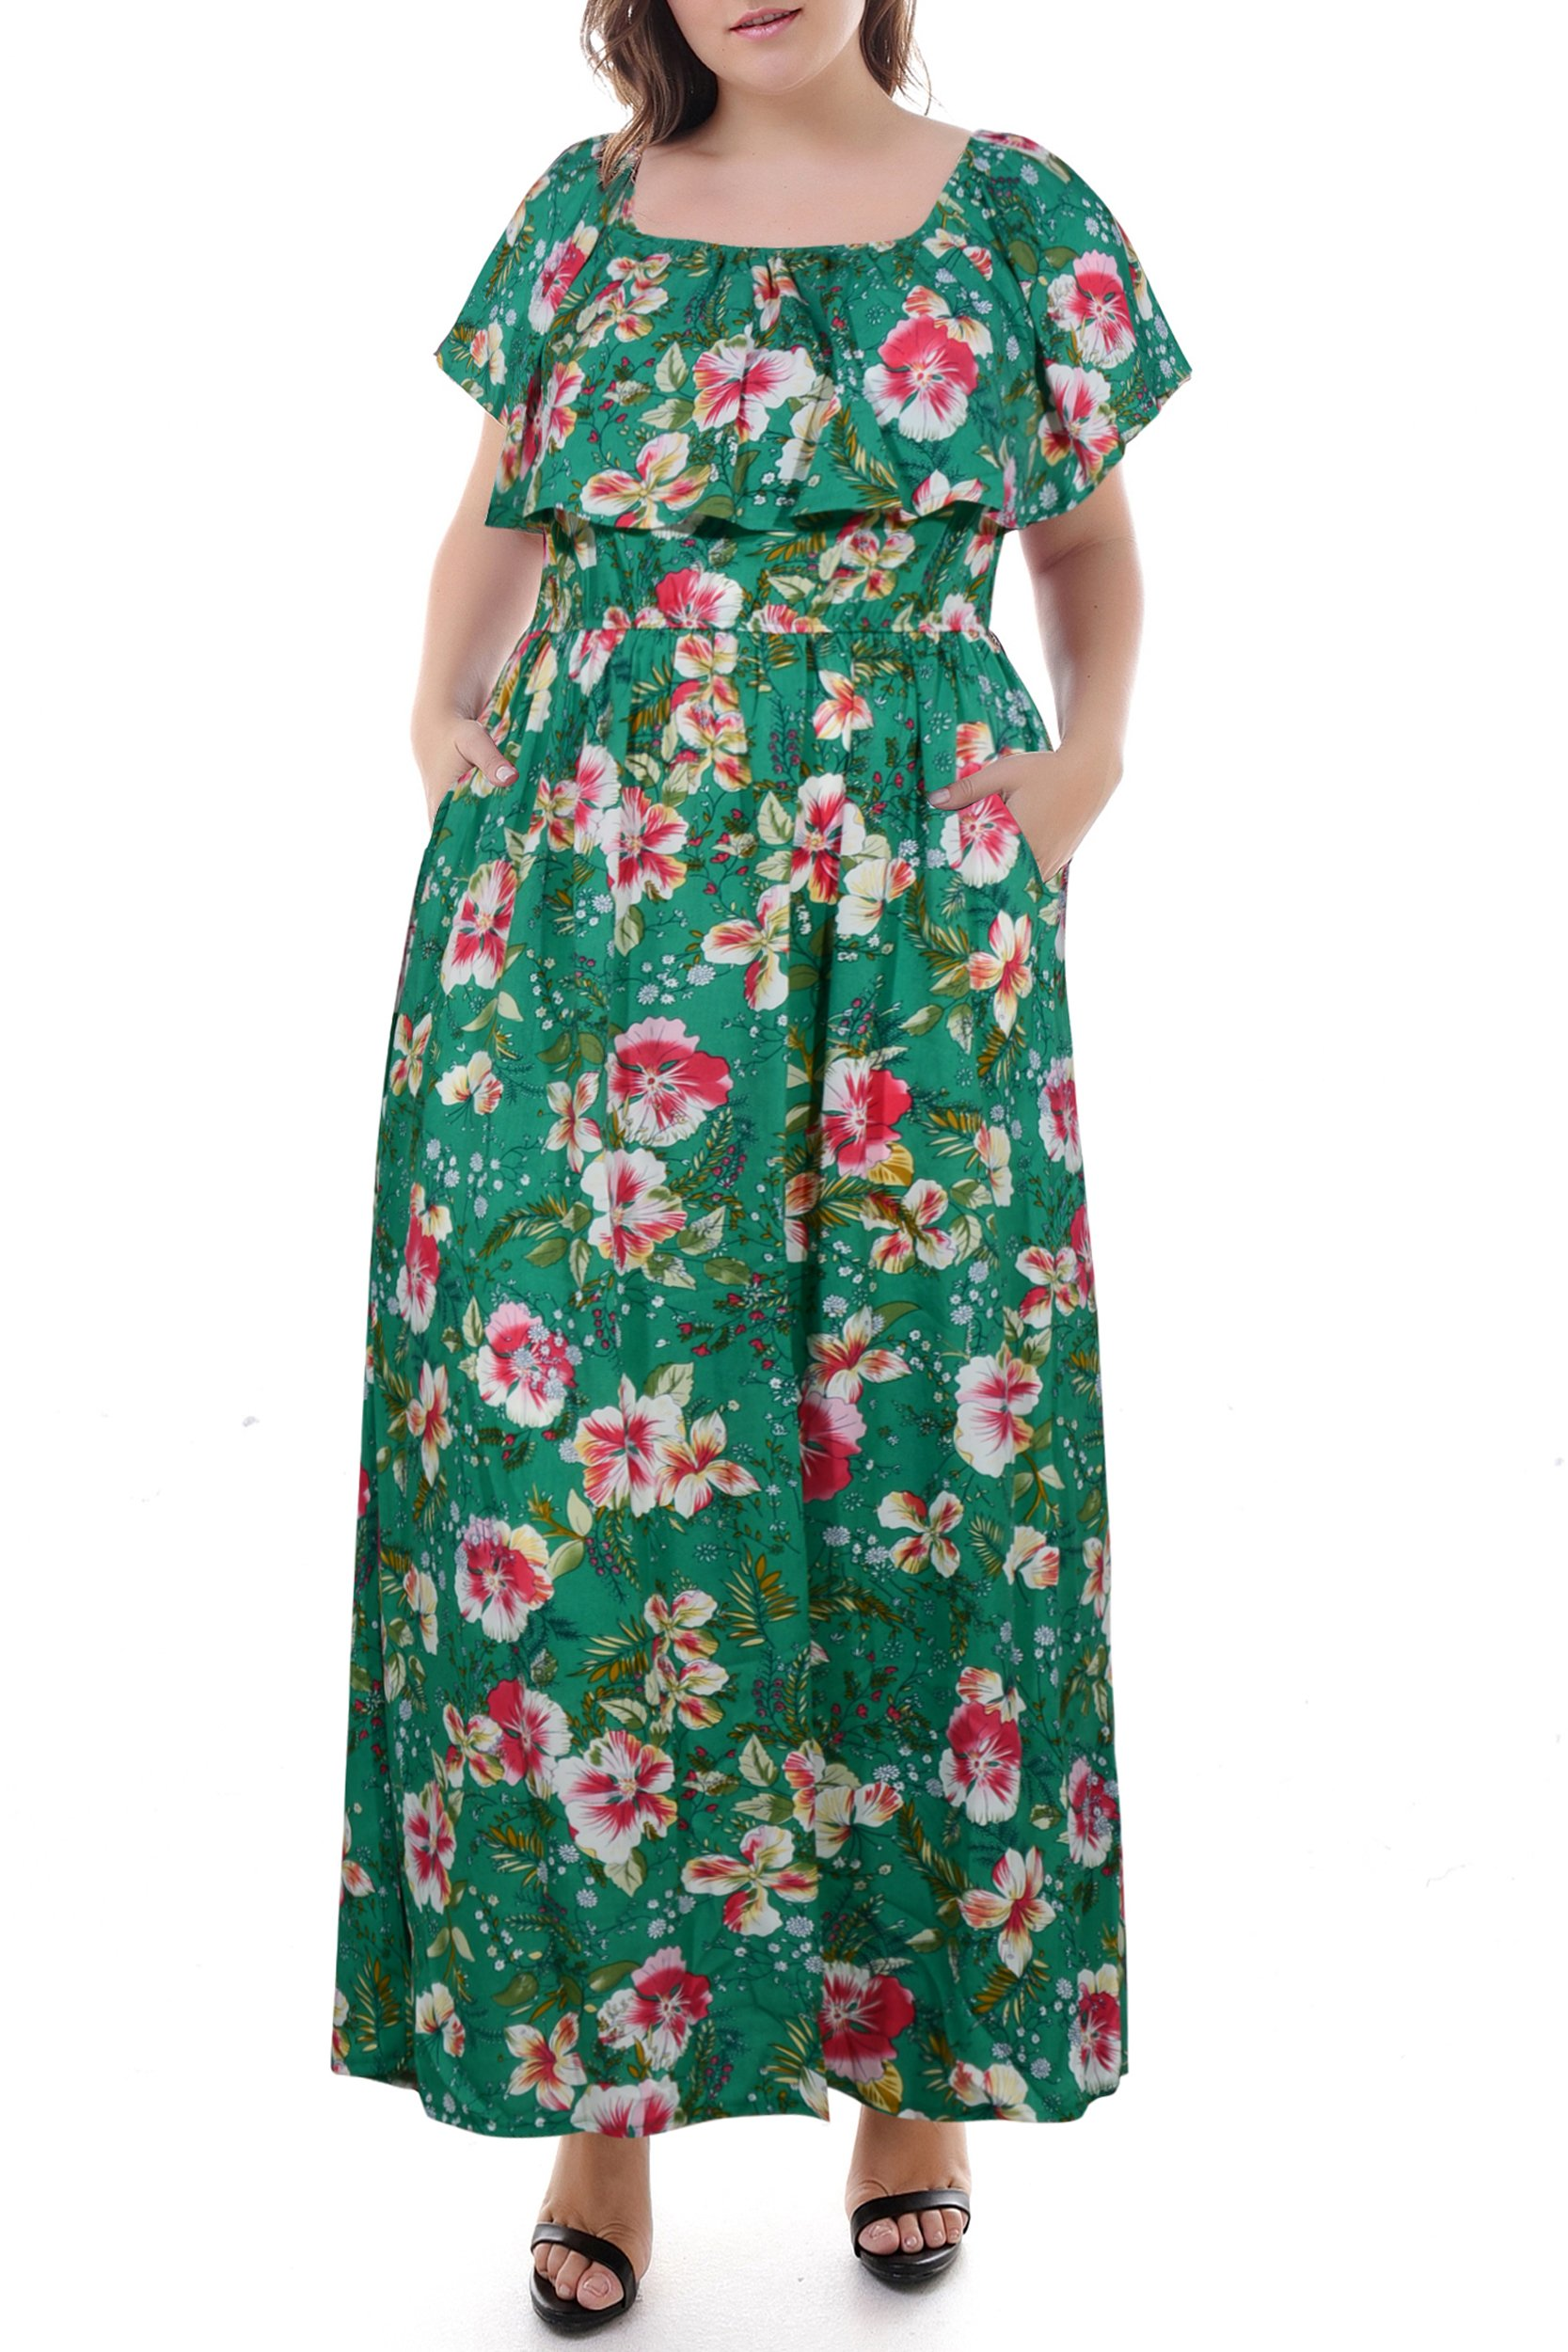 Nemidor Women's Floral Print Off Shoulder Summer Casual Plus Size Maxi Dress with Pocket (Green, 24W)